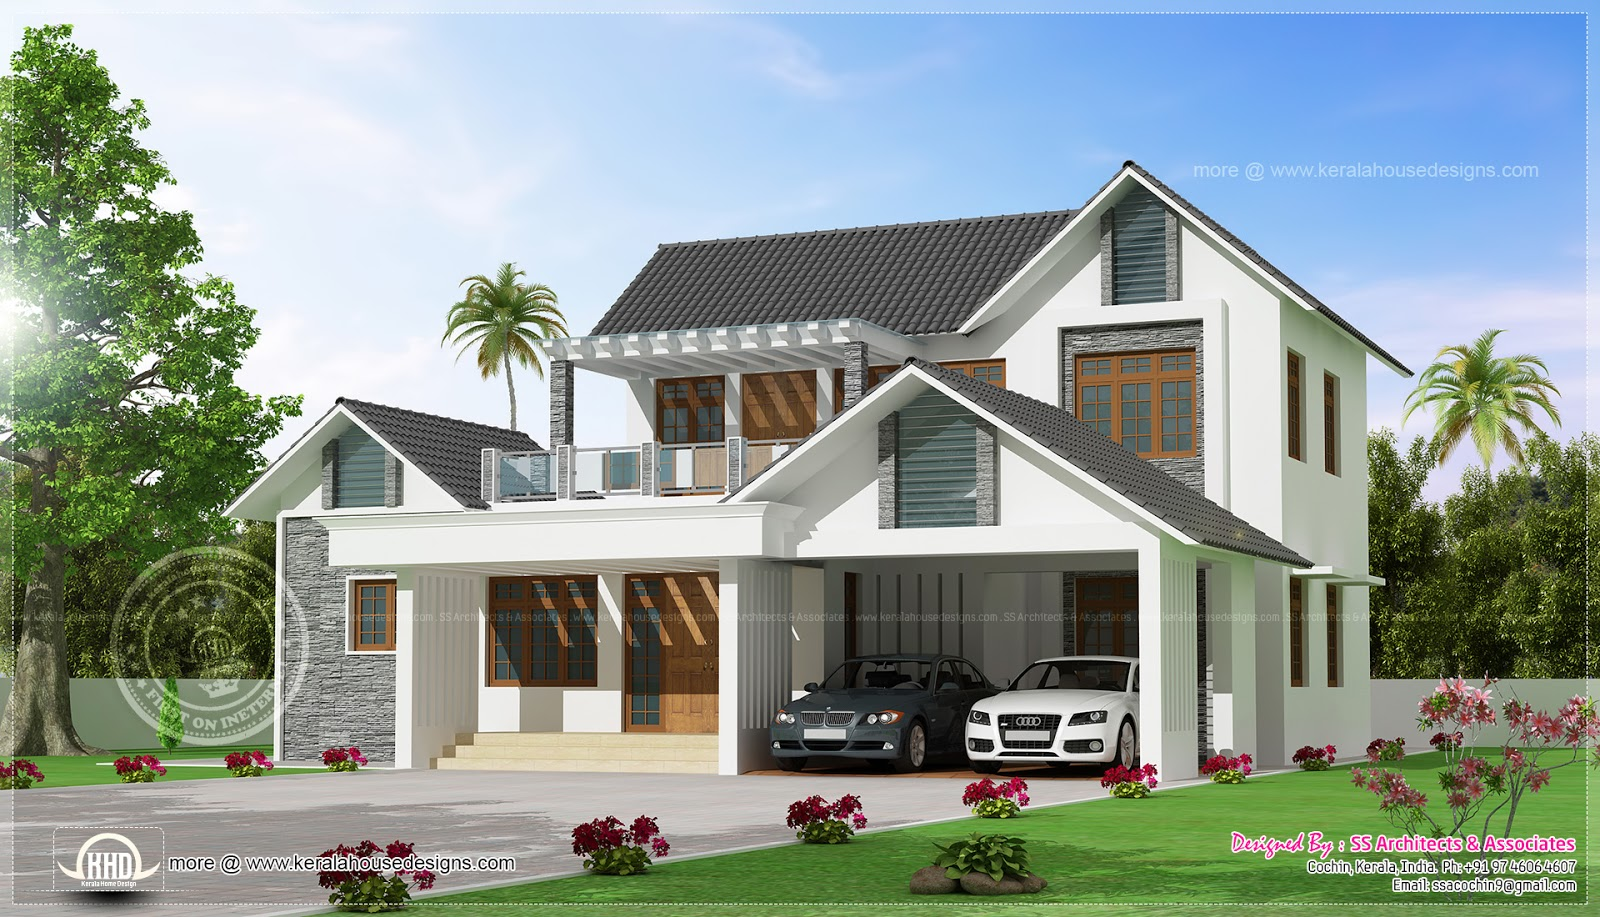 Awesome modern villa exterior elevation kerala home for Awesome home design ideas